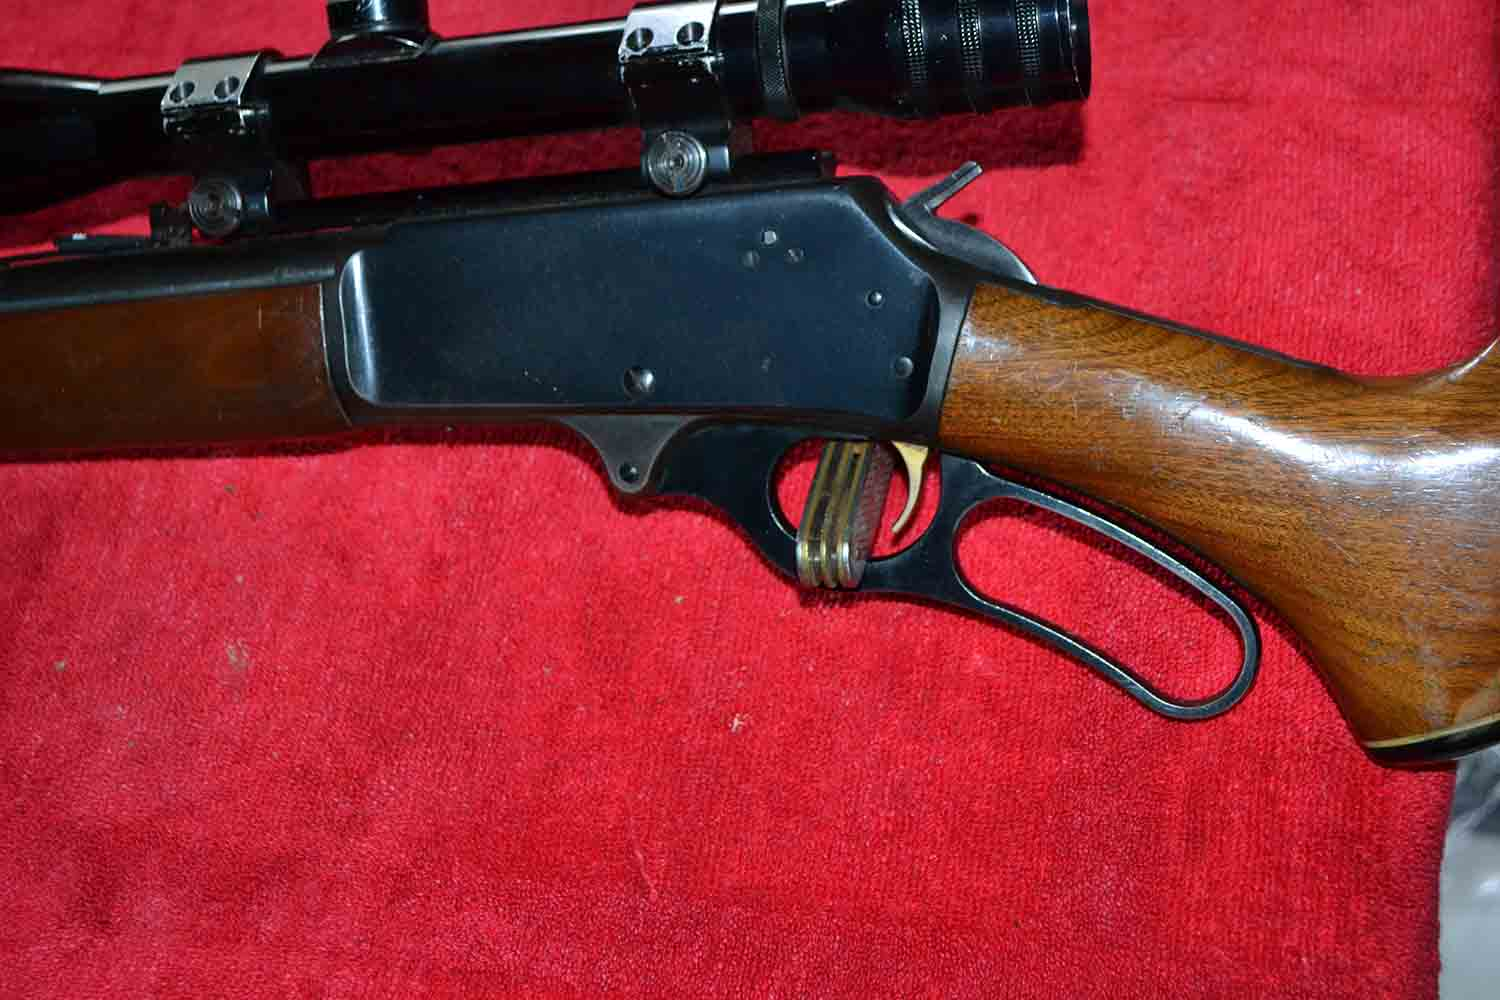 Best Scope for Marlin 336 Rifles: Reviews of the Top 5